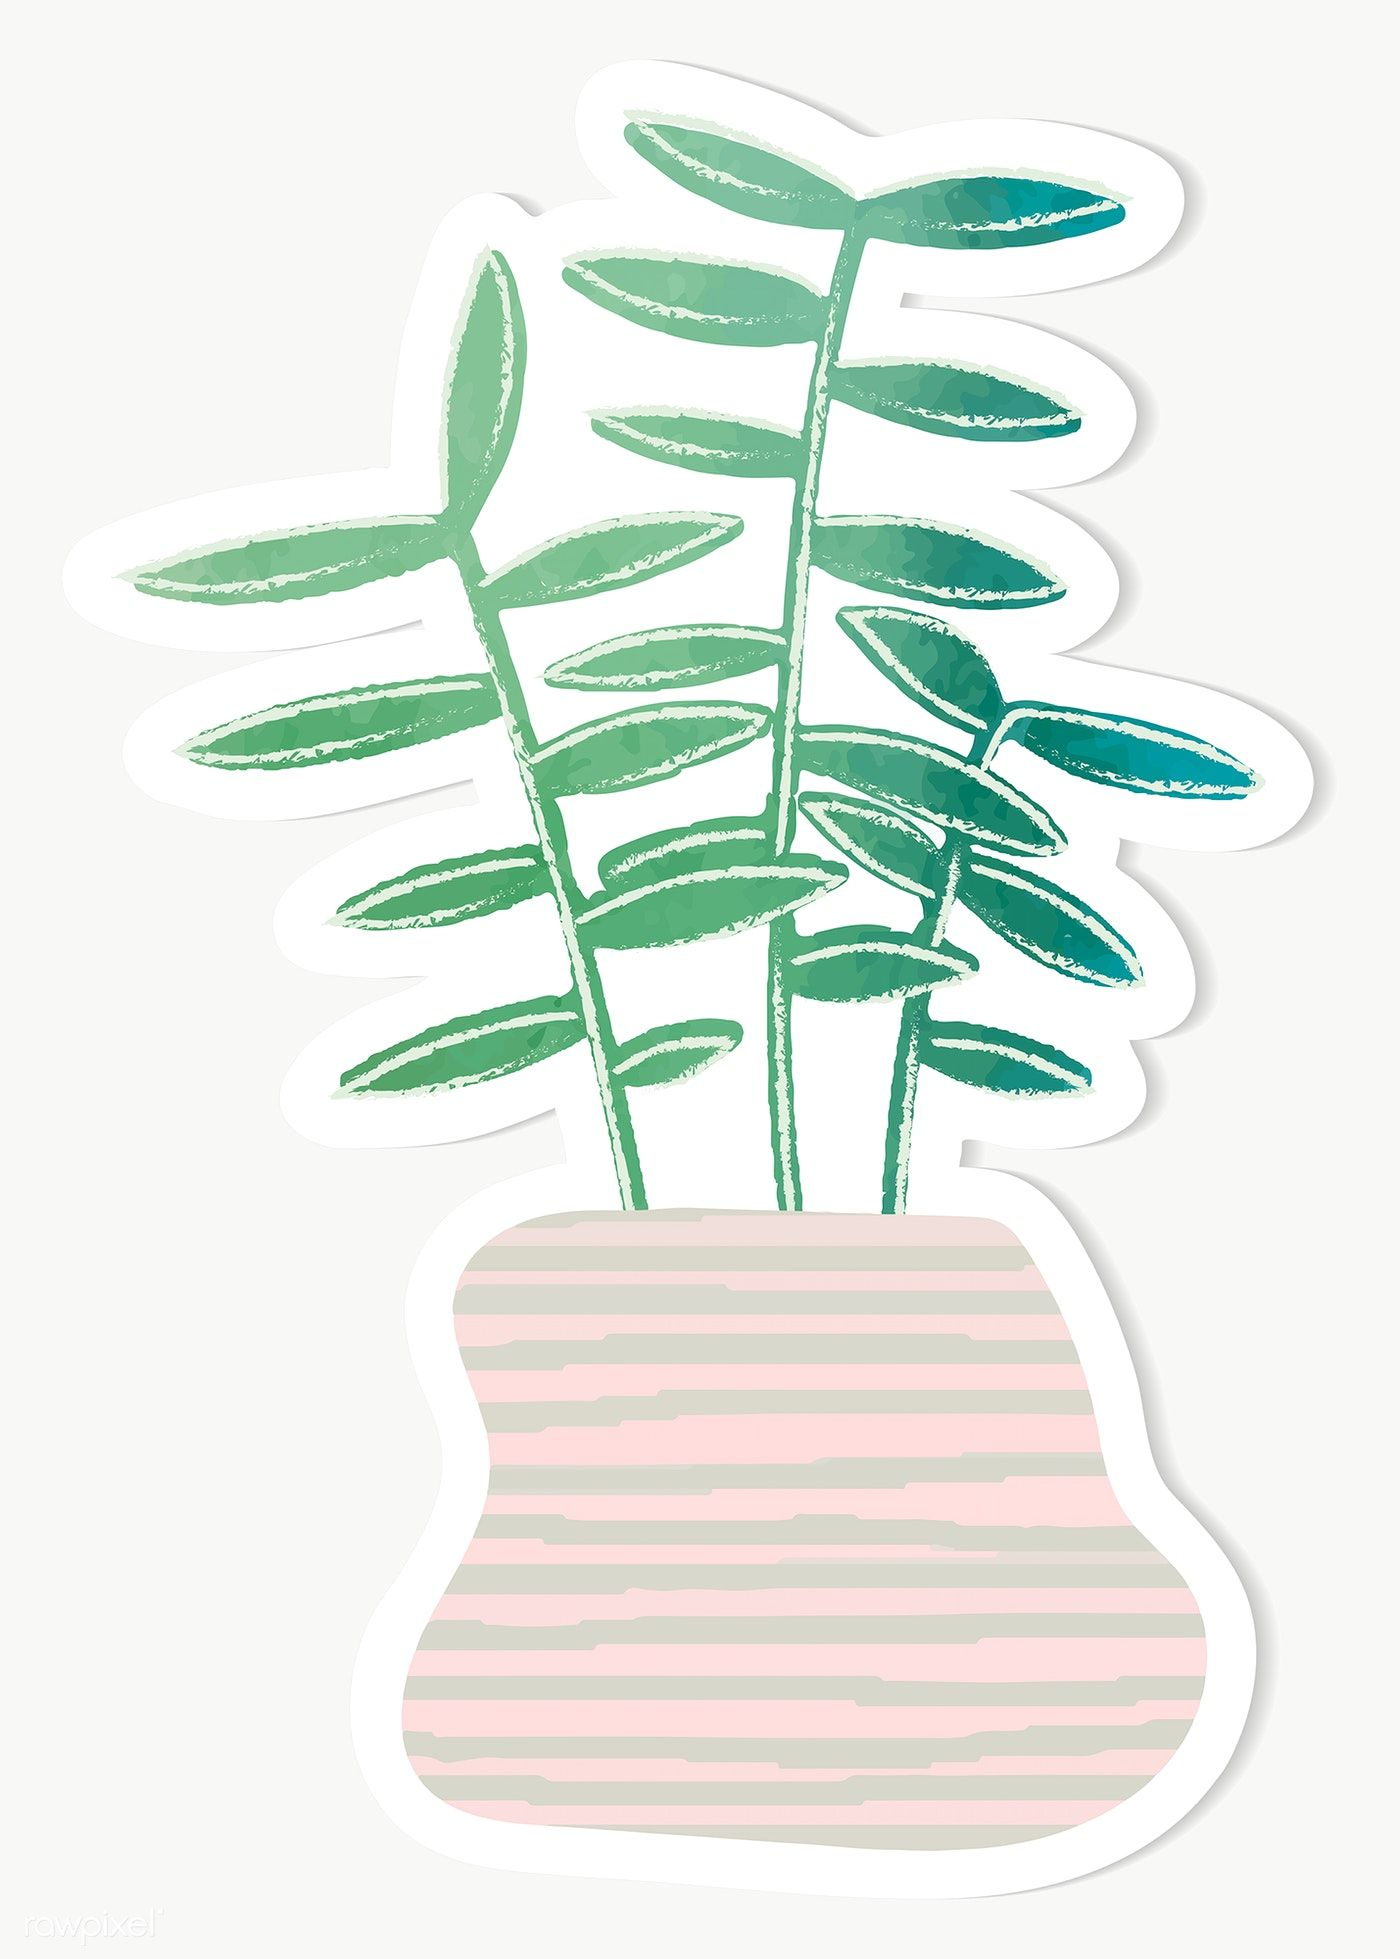 Download Premium Png Of Watercolor Tropical Potted Plant Sticker 2023028 Plants Cactus Design Stickers